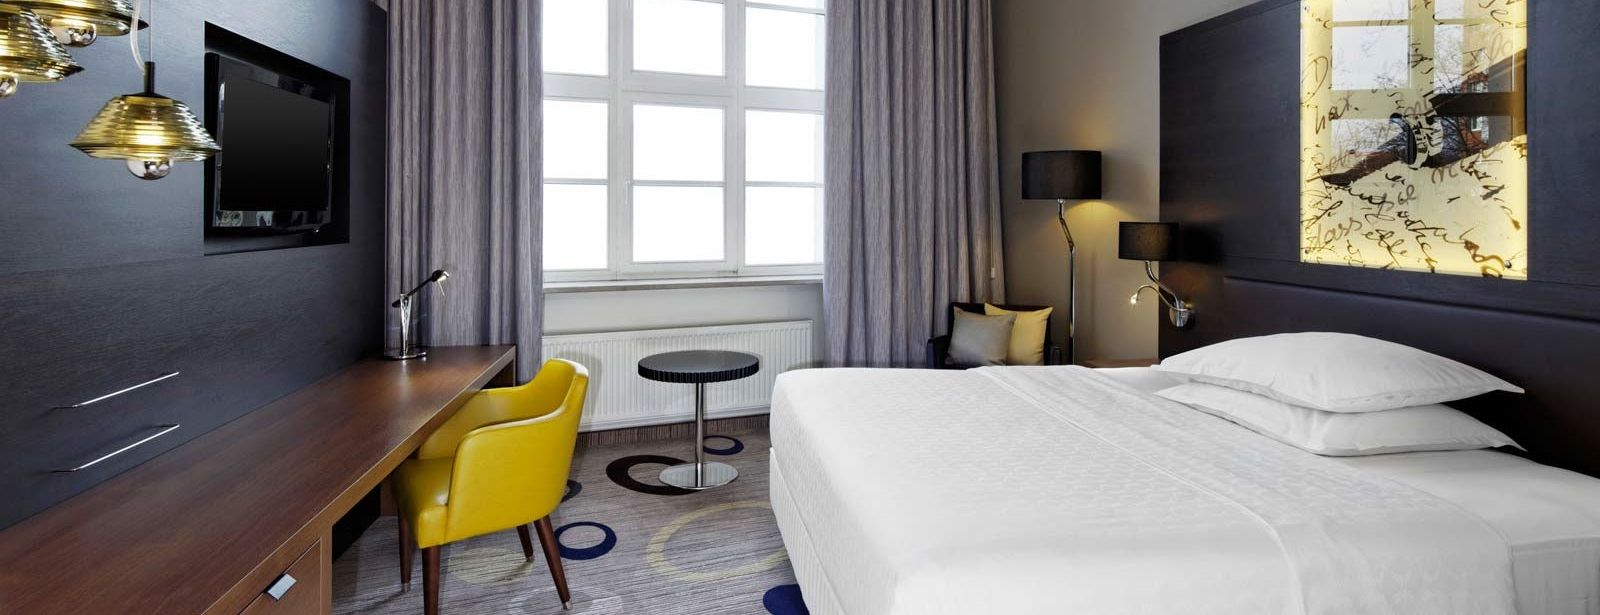 Classic Zimmer - Sheraton Hannover Pelikan Hotel